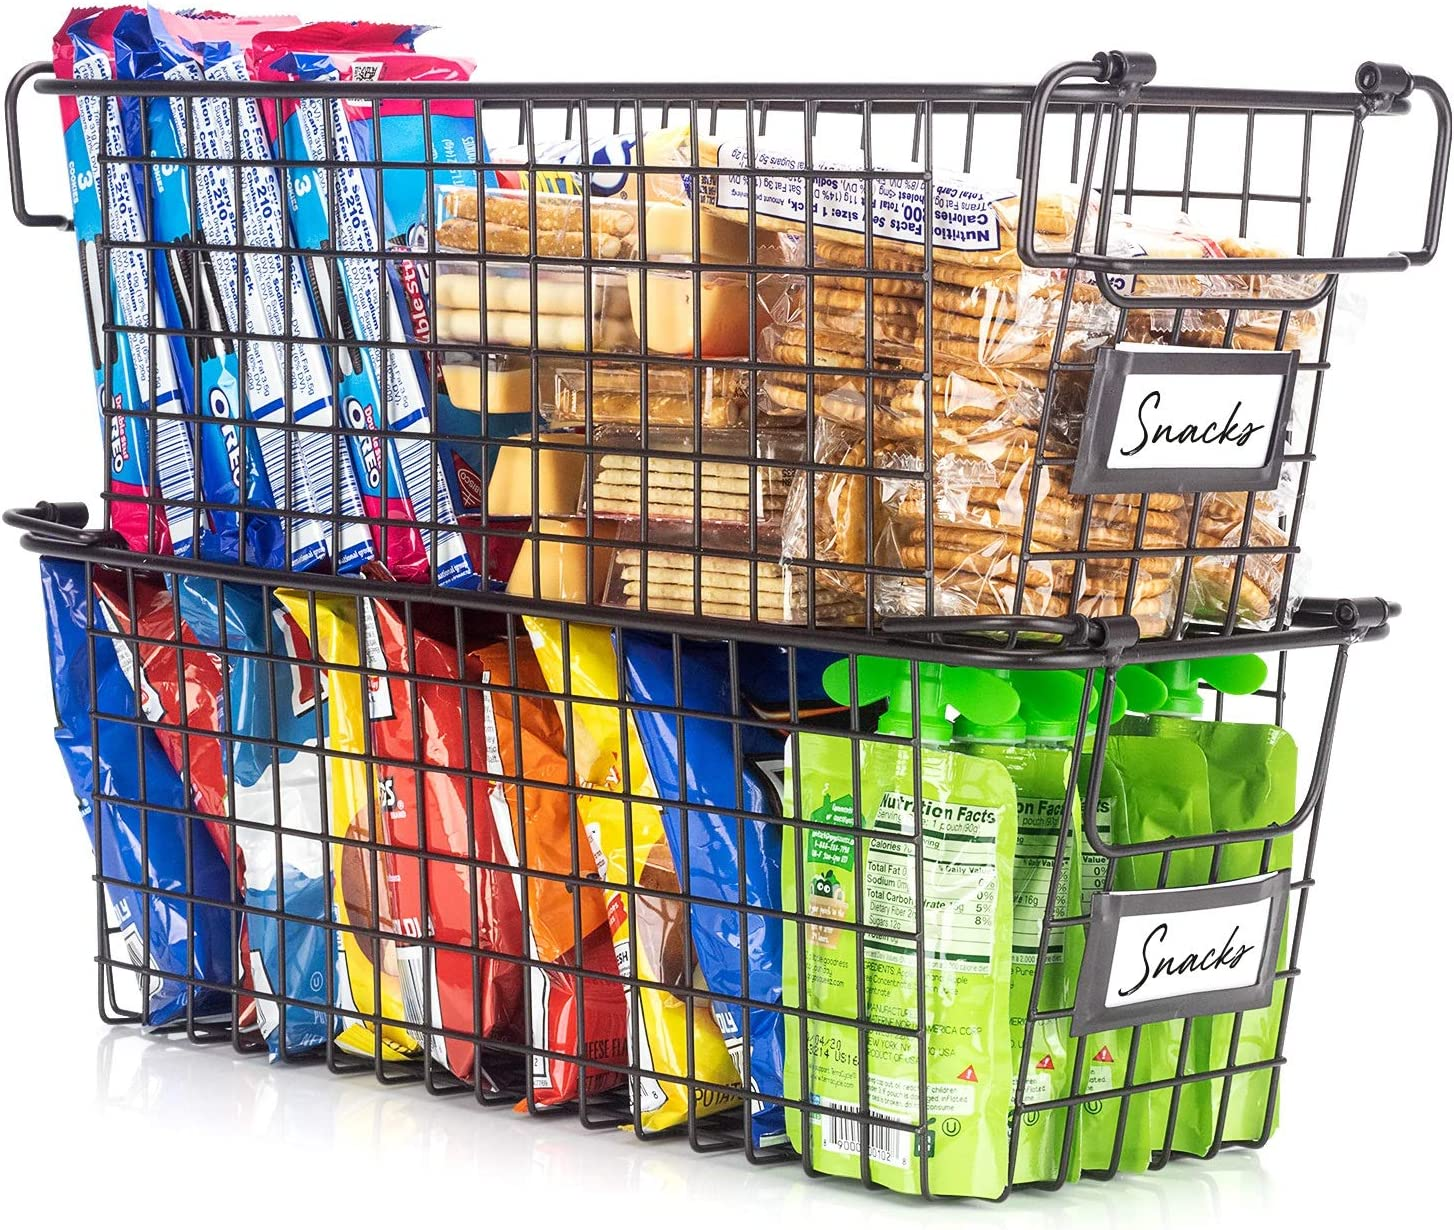 Gorgeous Stackable Wire Baskets For Pantry Storage and Organization - Set of 2 Pantry Storage Bins With Handles - Sturdy Metal Food Baskets Keep Your Pantry Organized